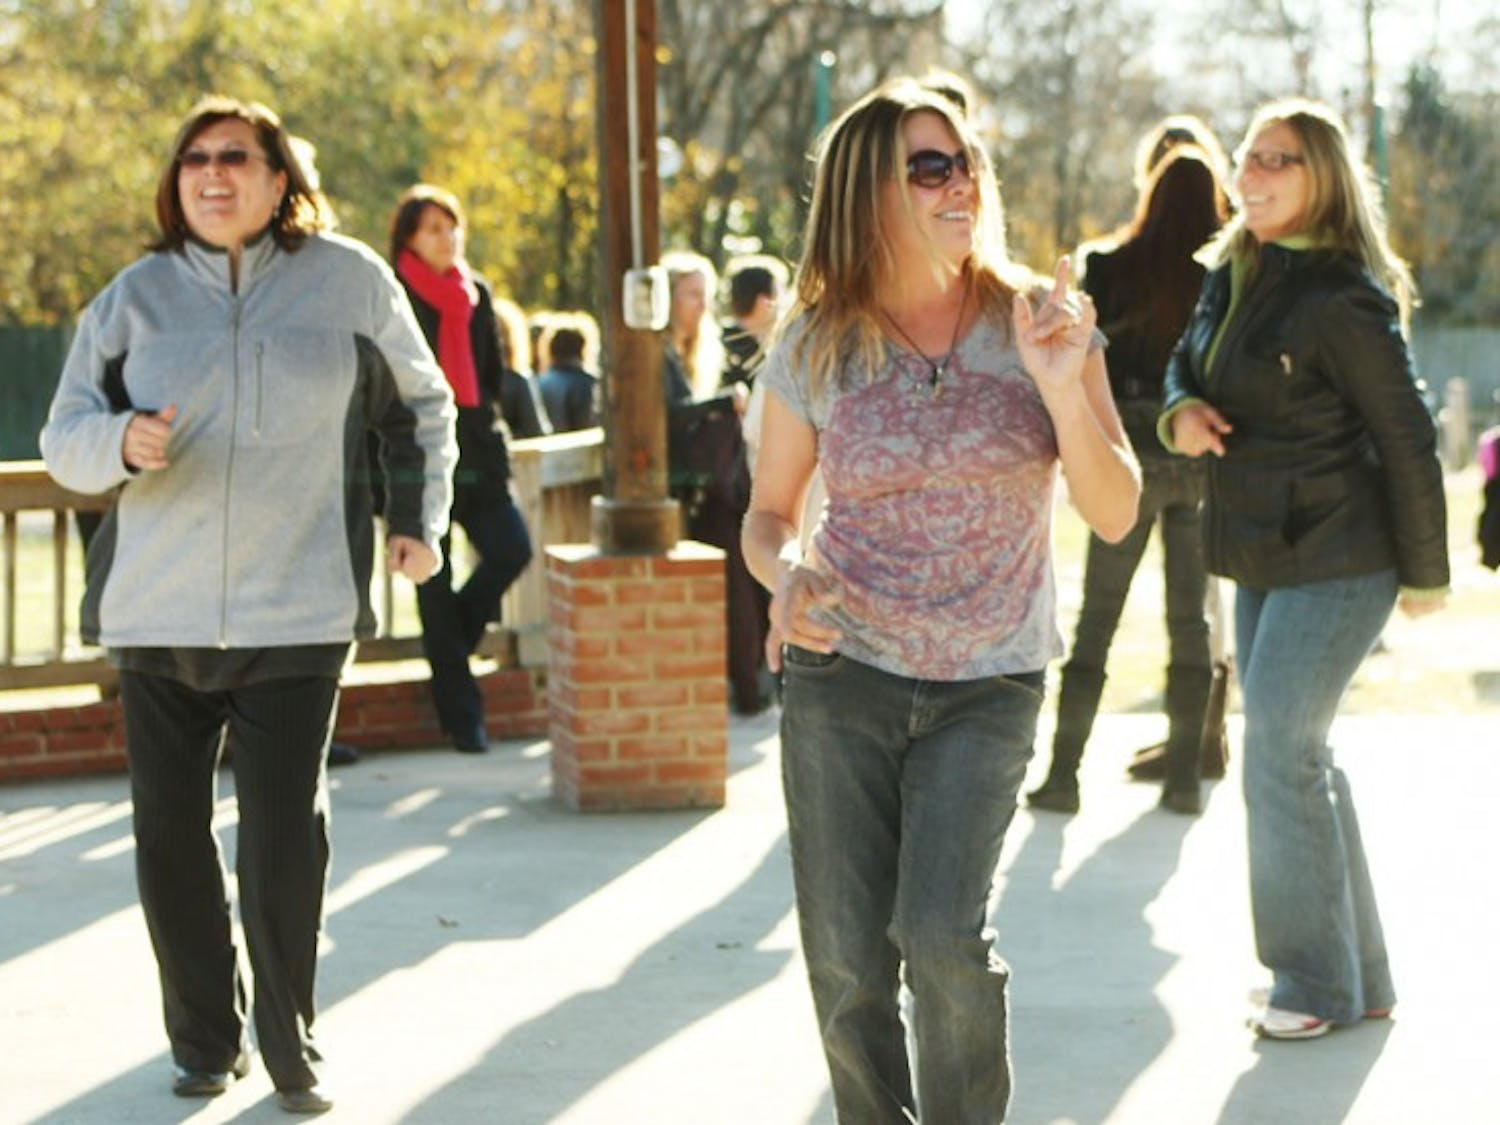 Jane Tuohey (left), Kelly Brown (middle), and Anita Akstin (right) dance in the gazebo at Town Commons in Carrboro as they wait to be in the group photo for Lovetown, USA.